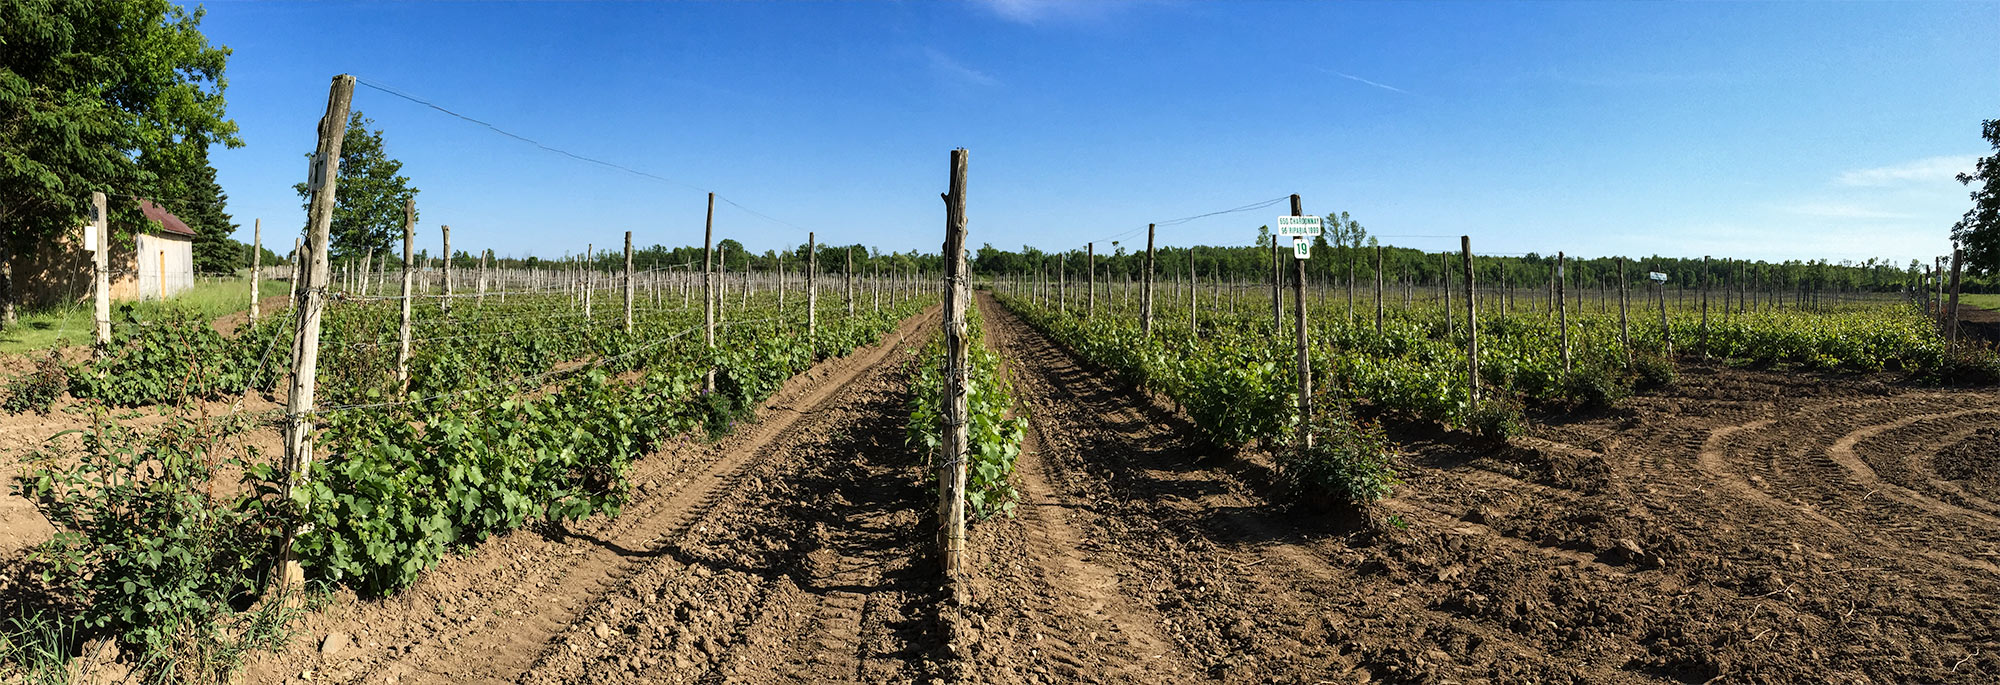 Long Dog winery in Prince Edward County.